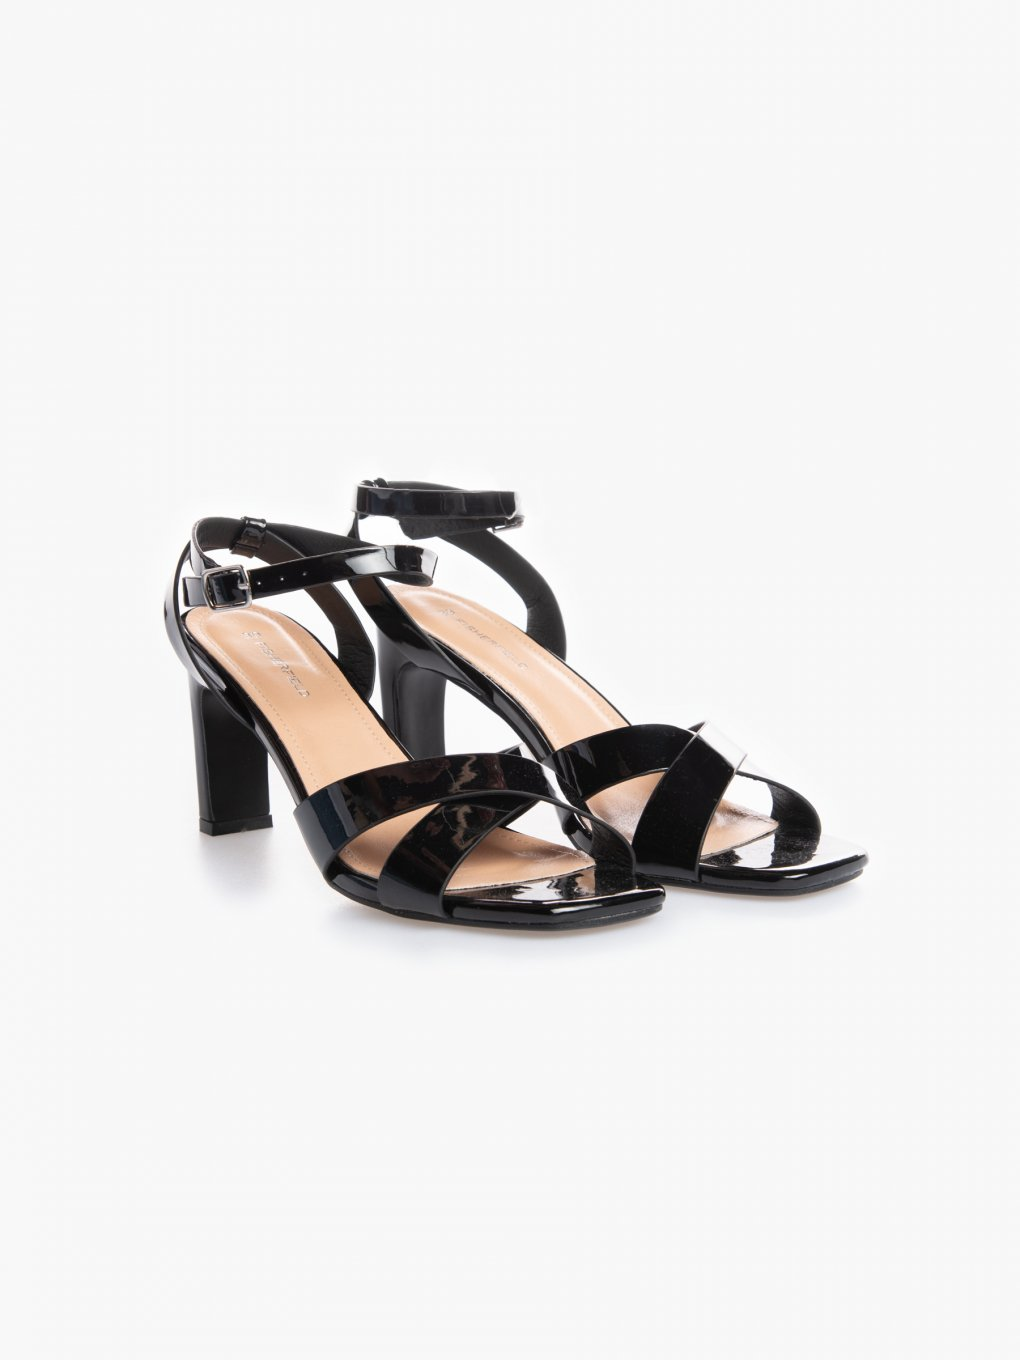 Patent finish high heel sandals